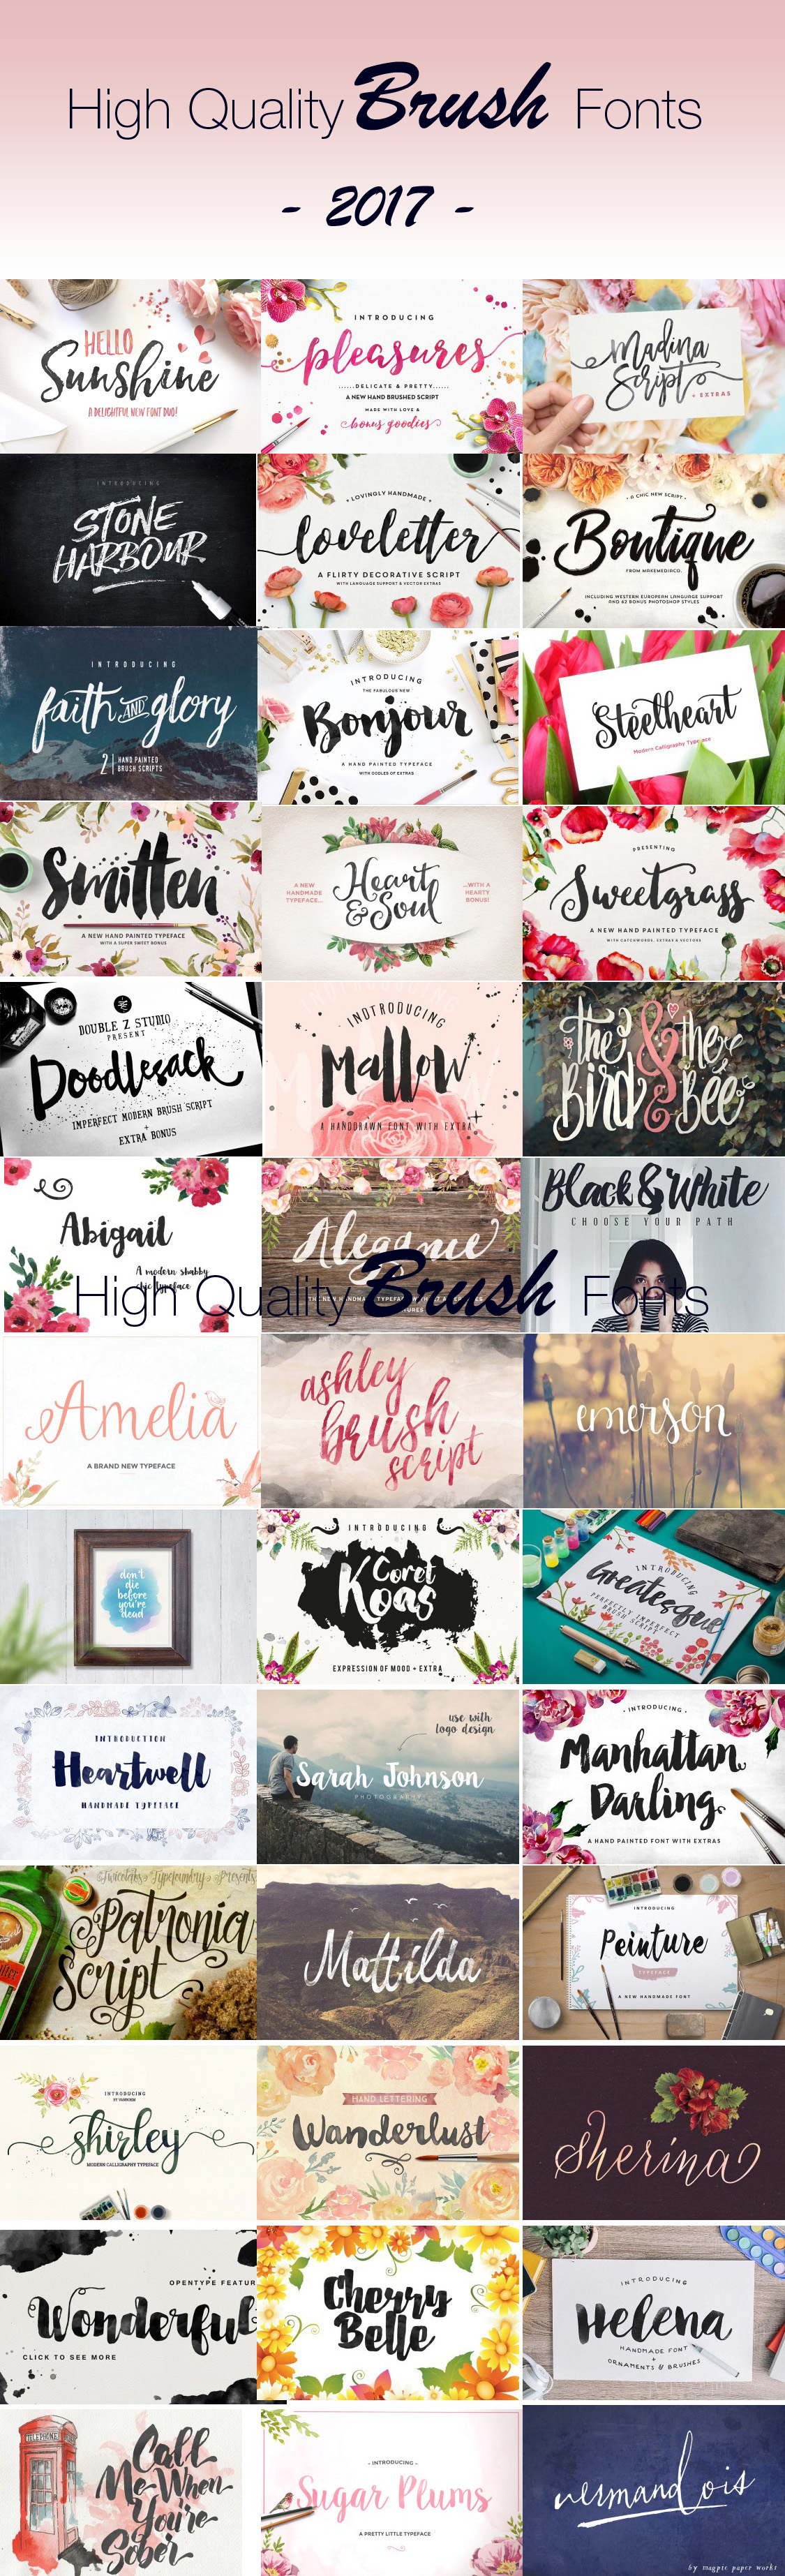 high quality brush fonts